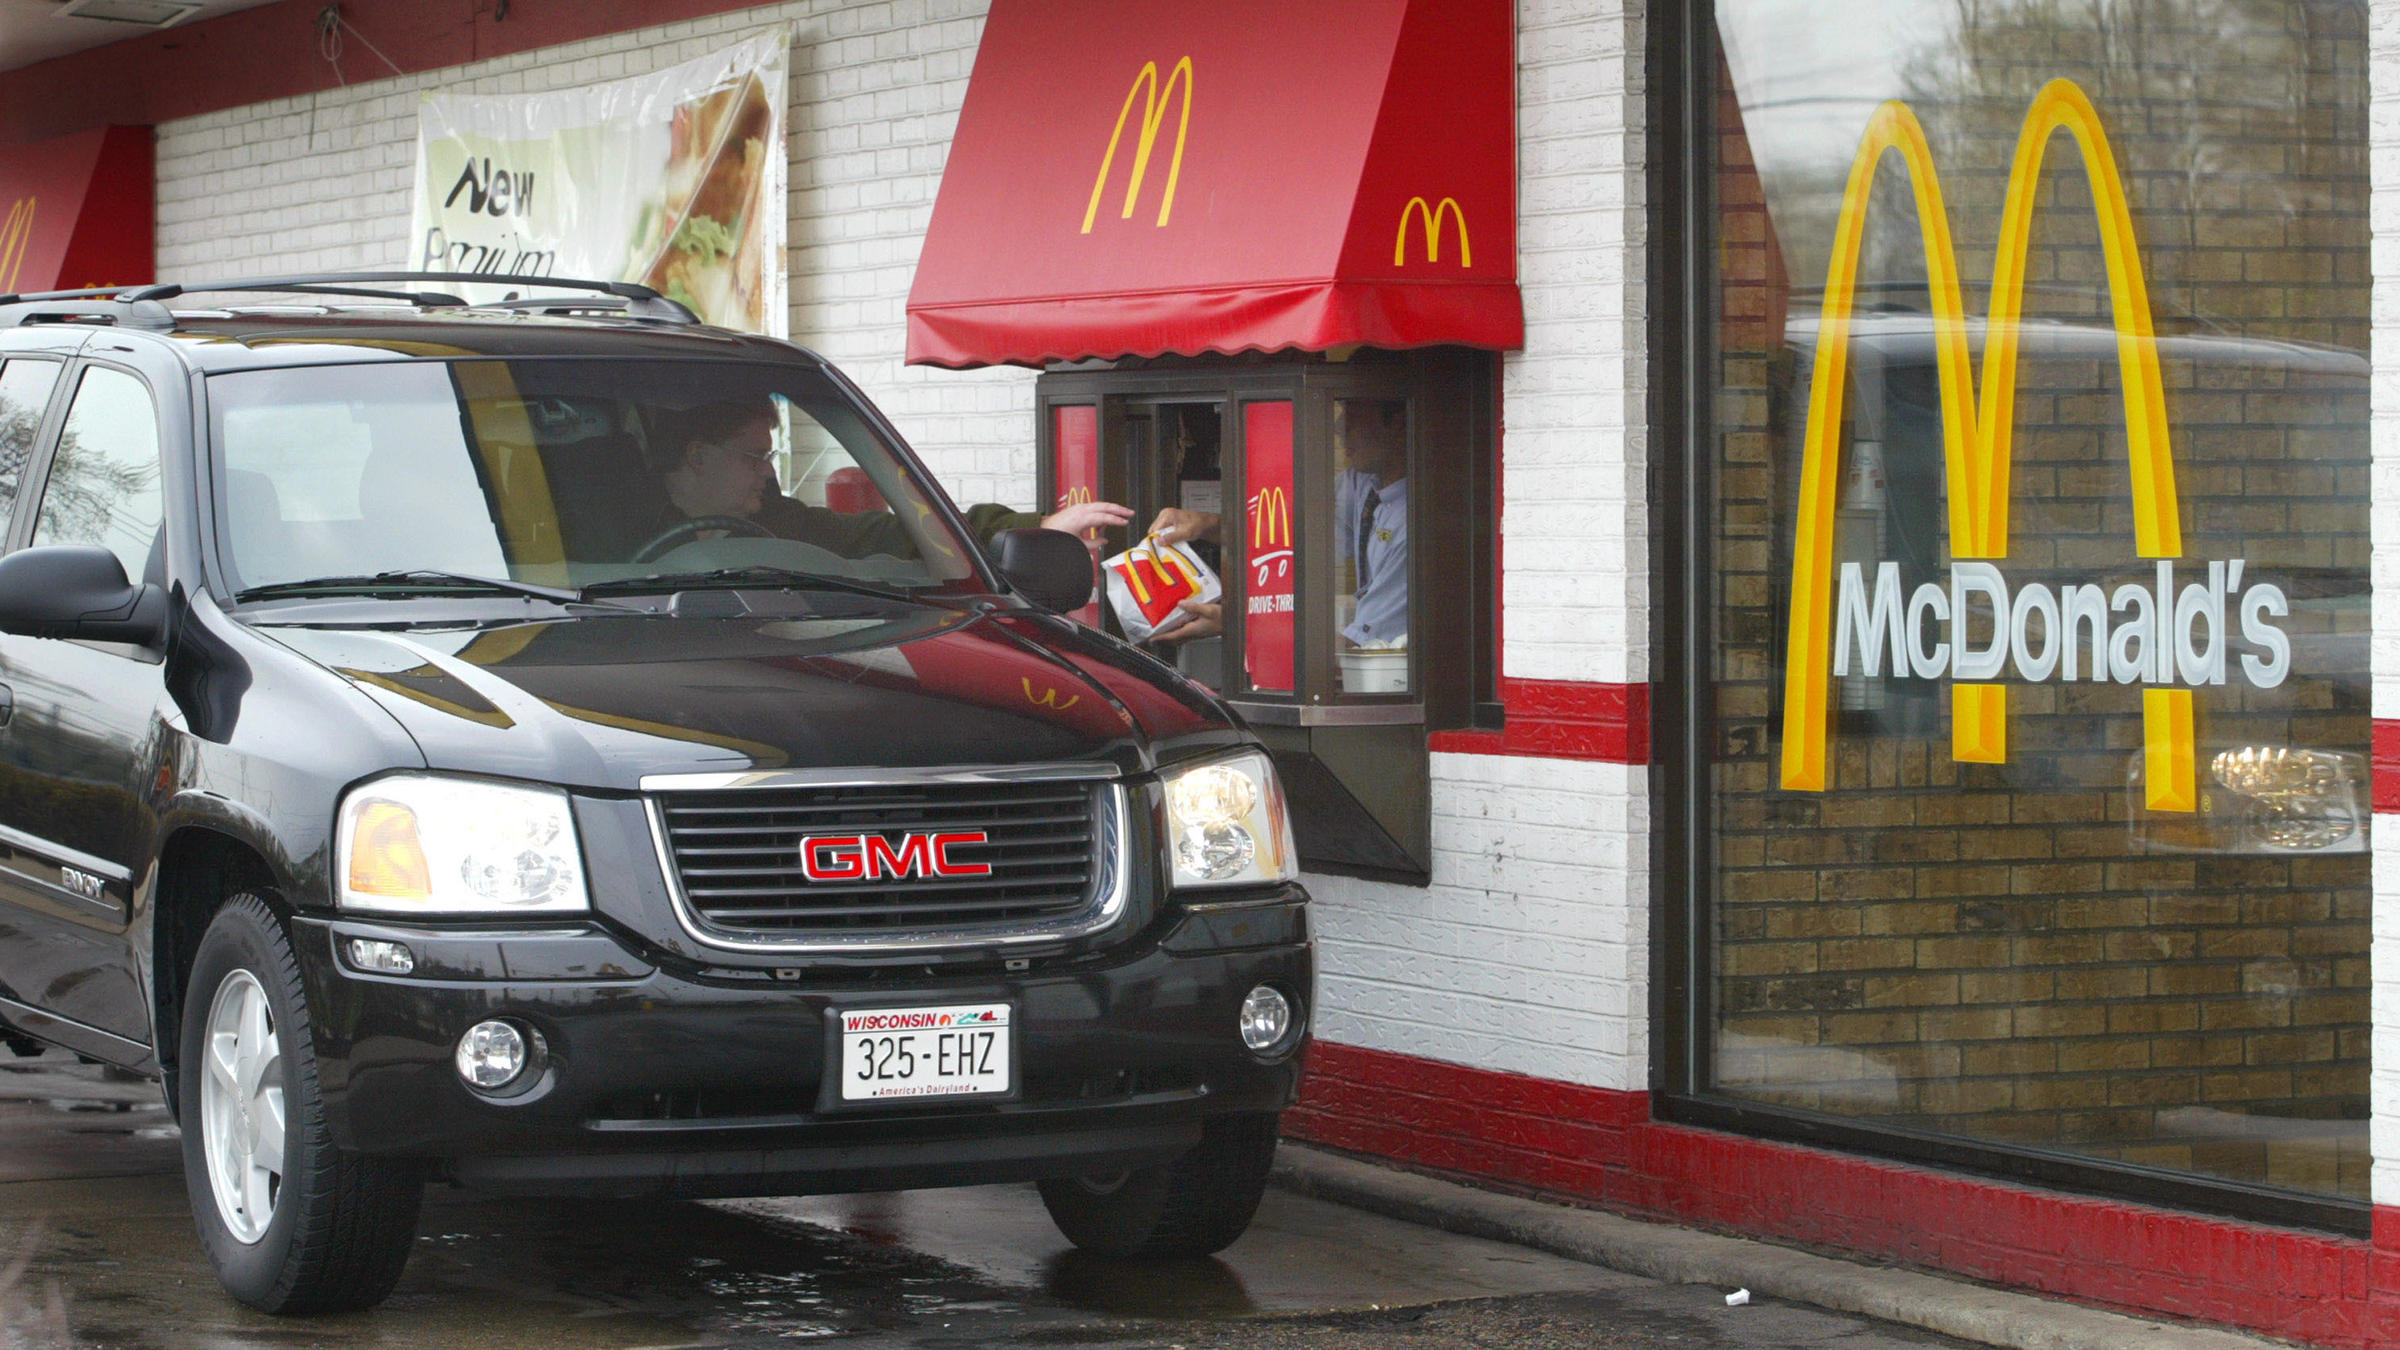 Why U.S. Cities Are Banning New Fast-Food Drive-Throughs